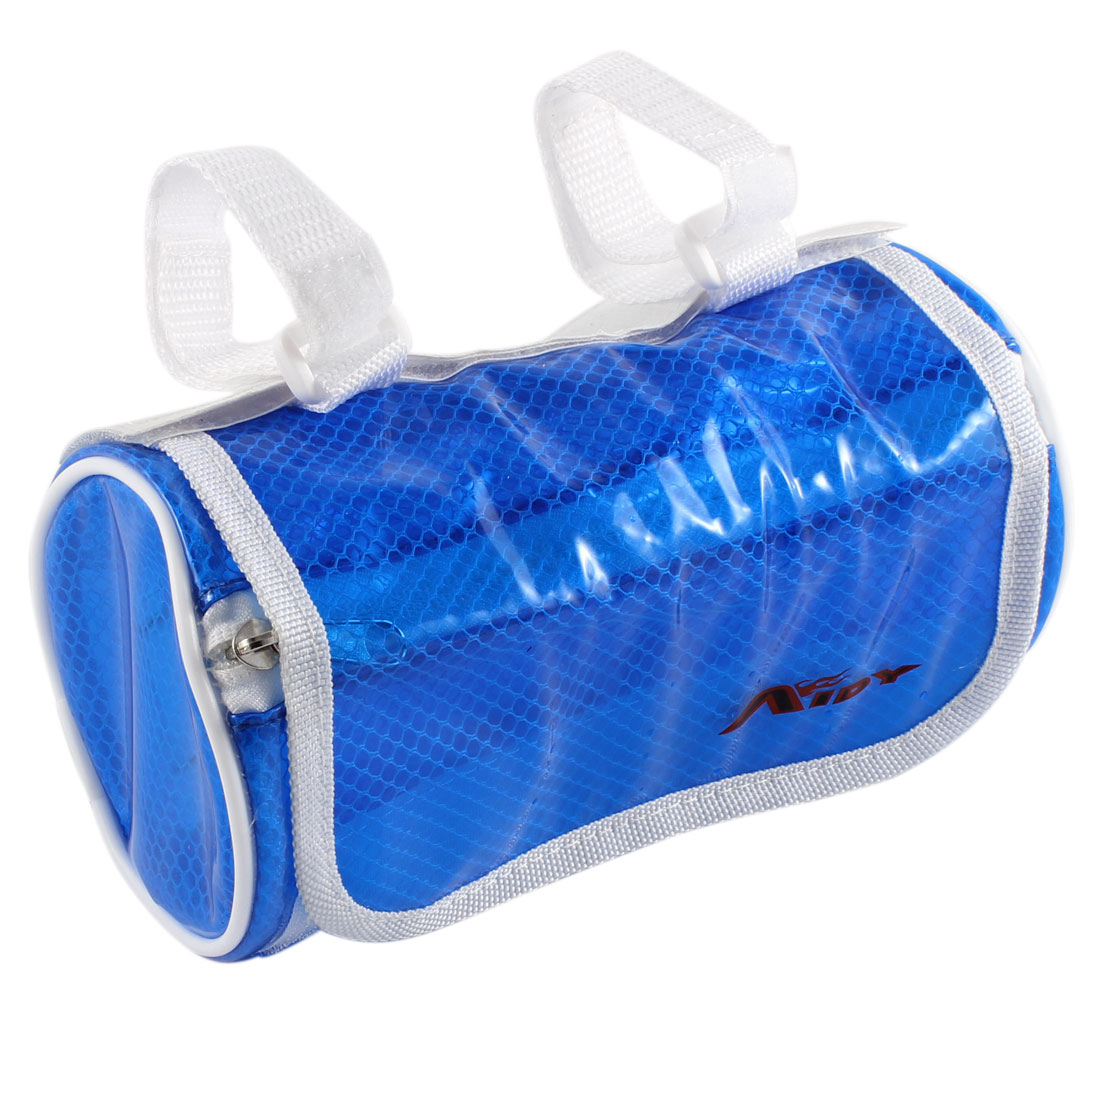 Cycling Bike Front Pannier Basket Water Resistant Handlebar Bar Pouch Bag Clear Blue